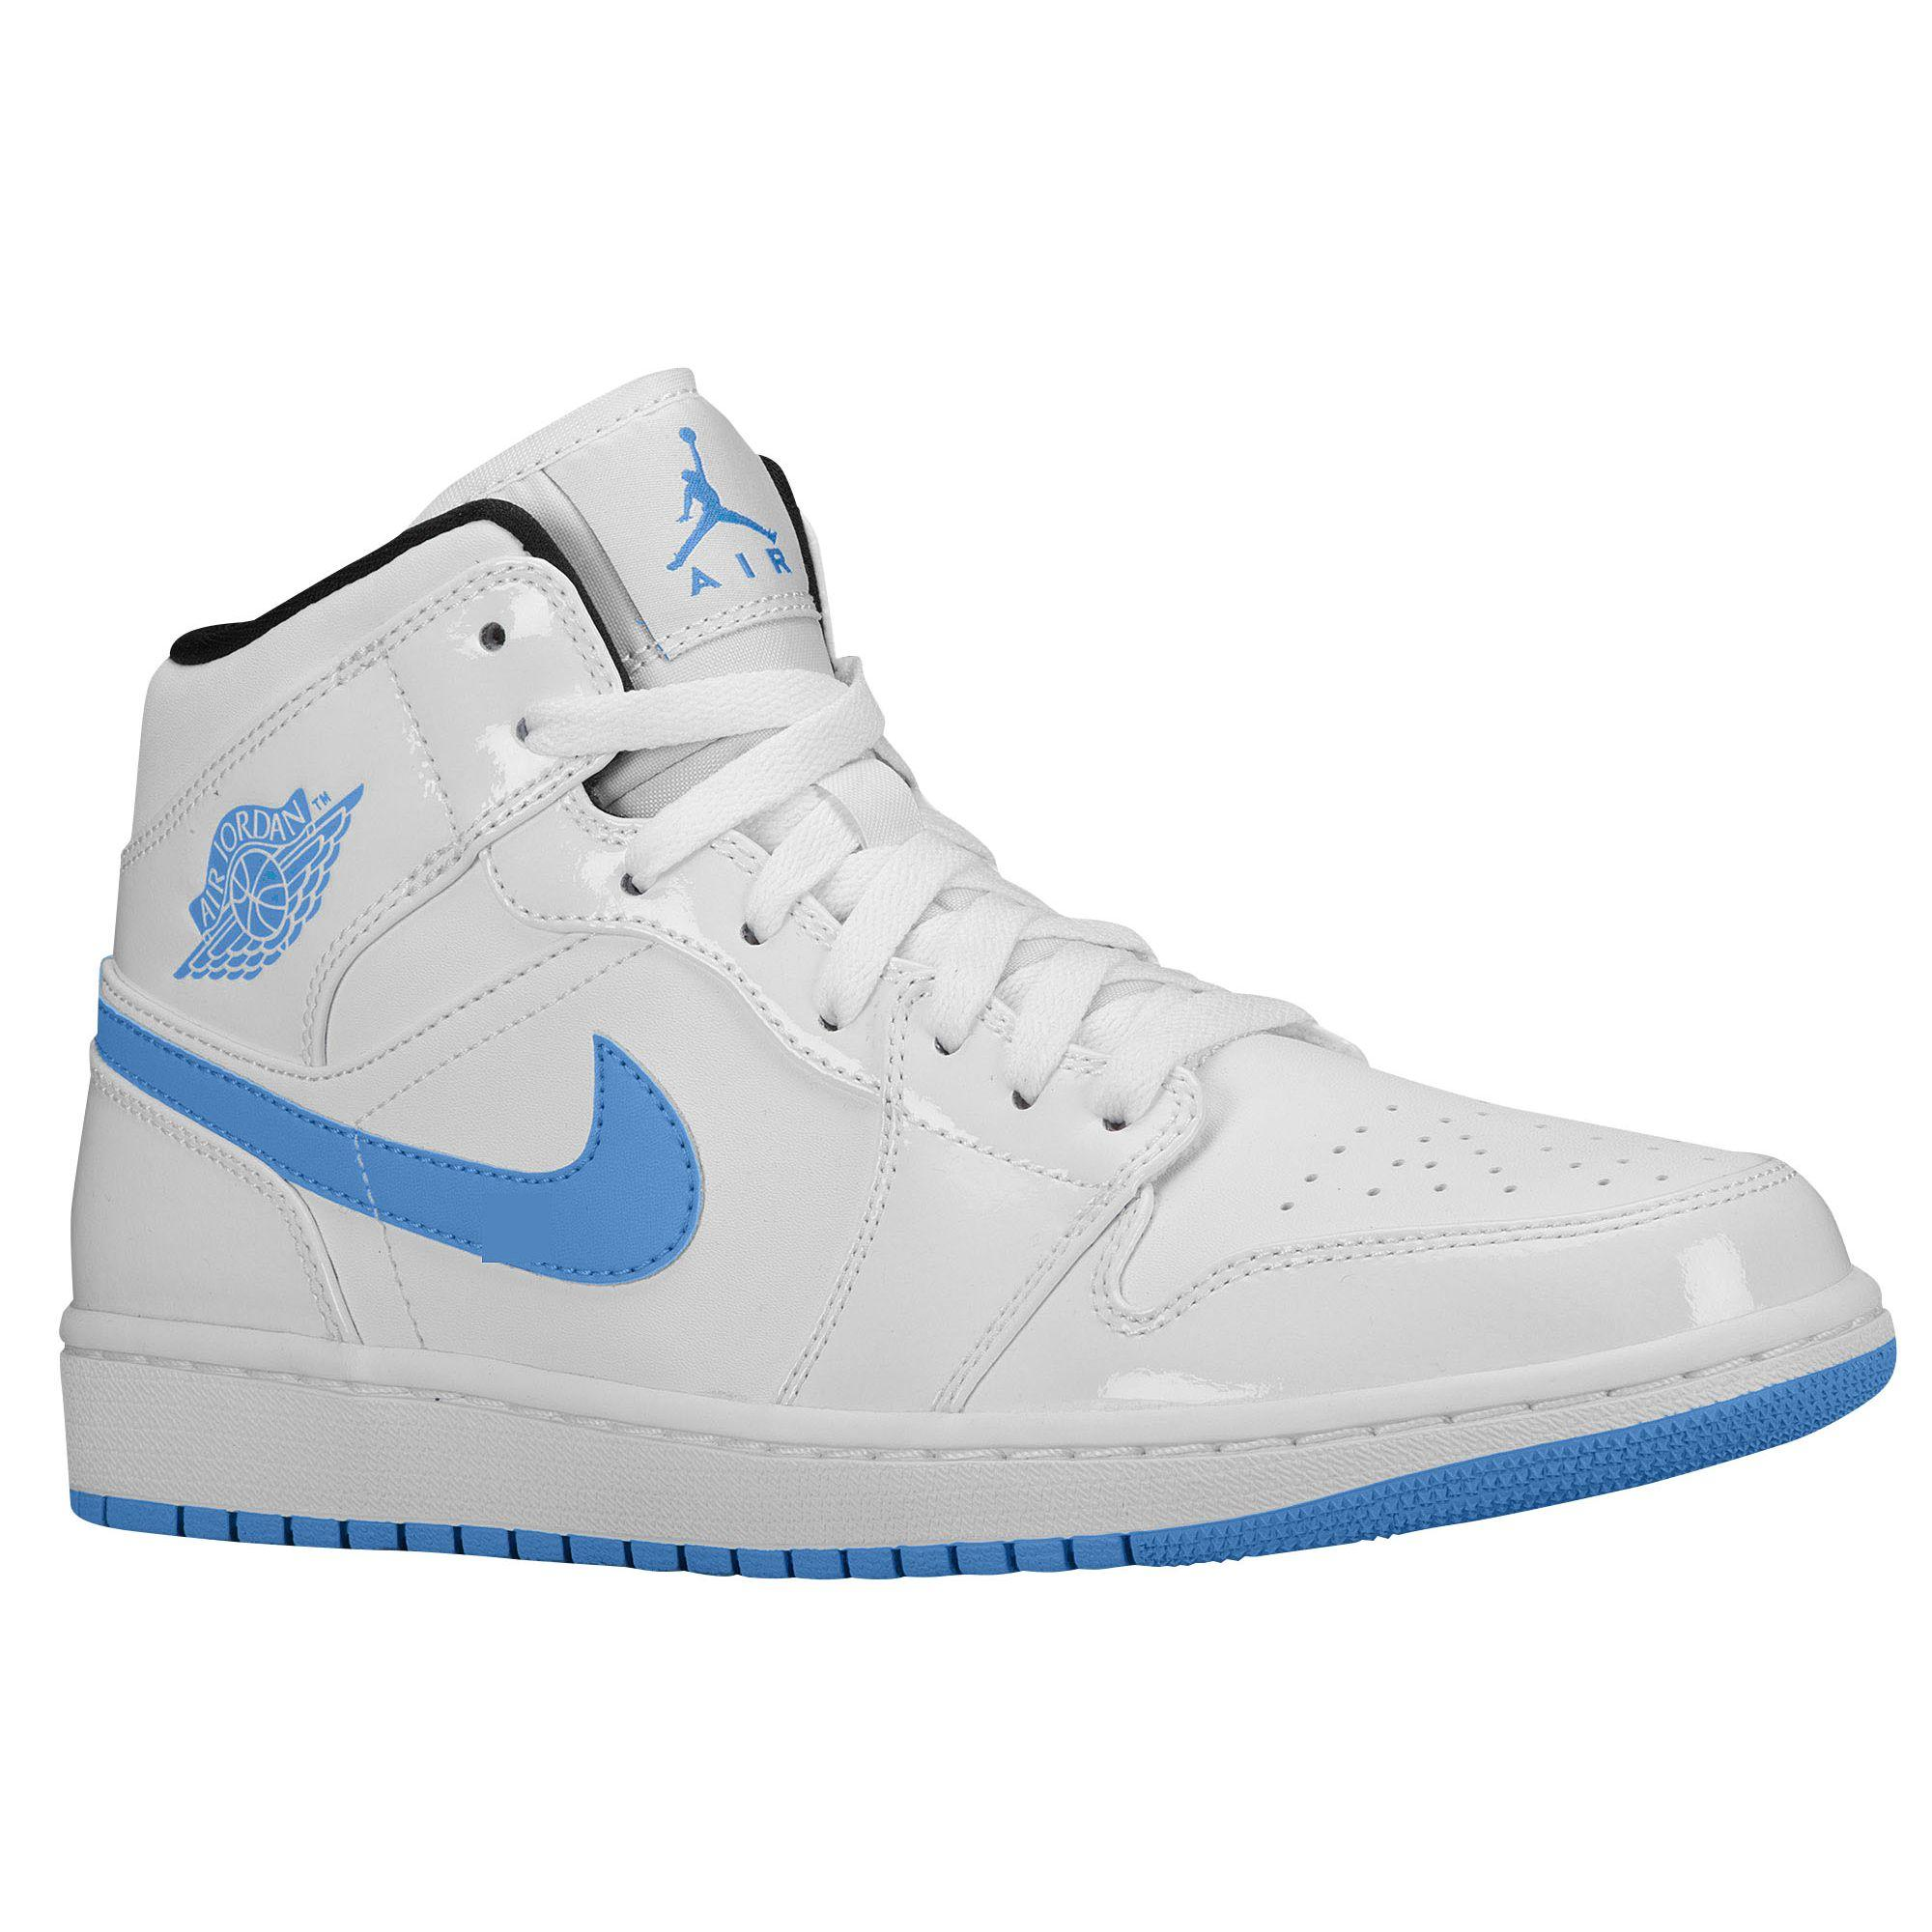 jordan aj1 mid men s at champs sports from champs sports hibbett sports shoes jordan's girls hibbett sports shoes online